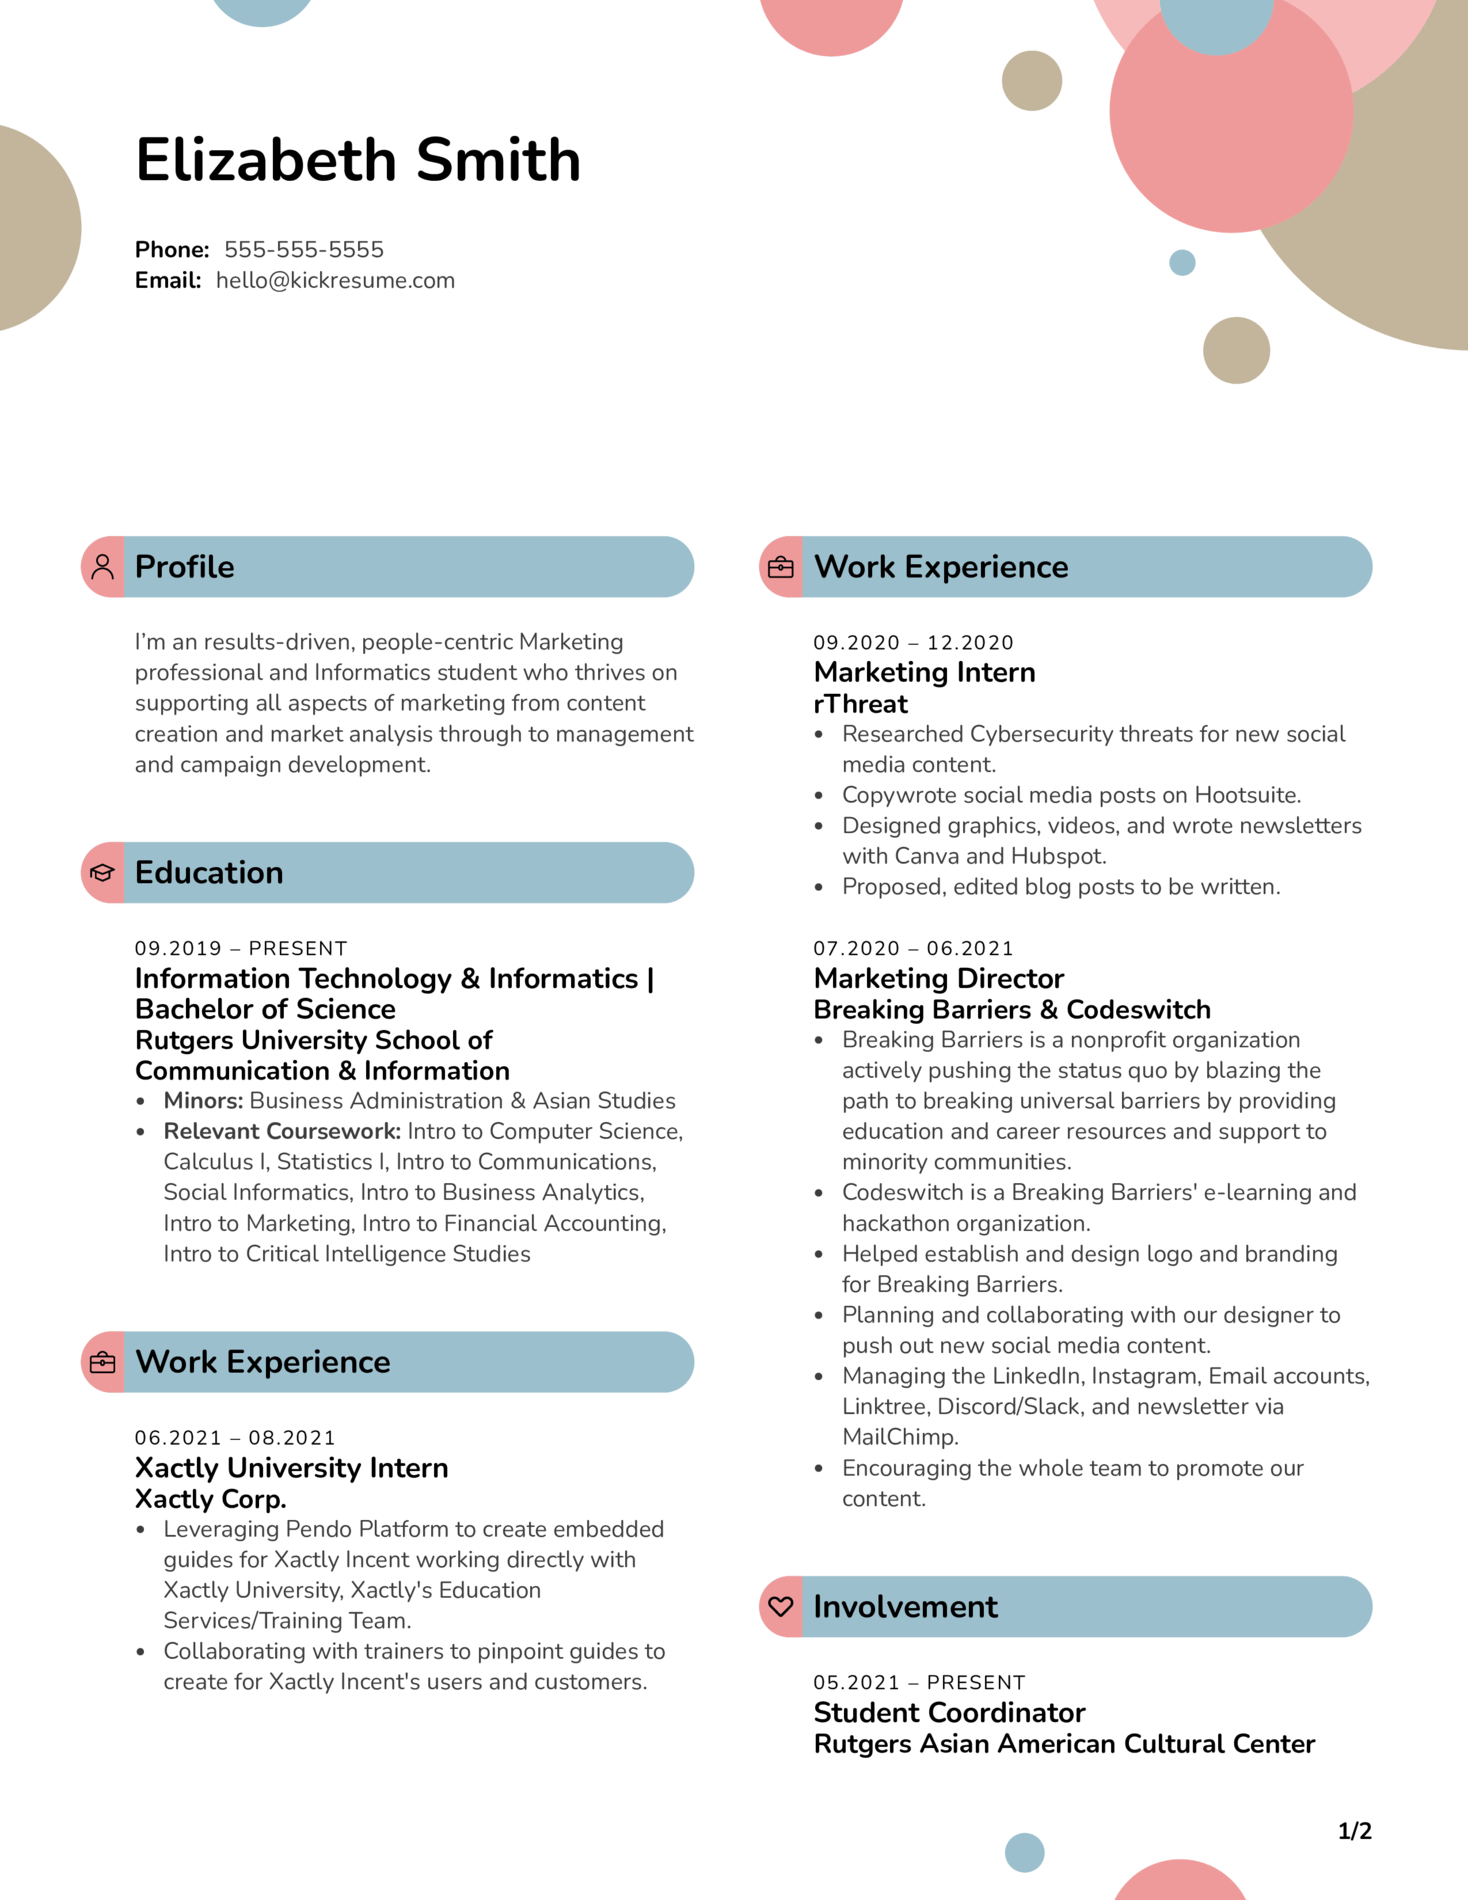 Intern at Xactly Corporation Resume Sample (Part 1)